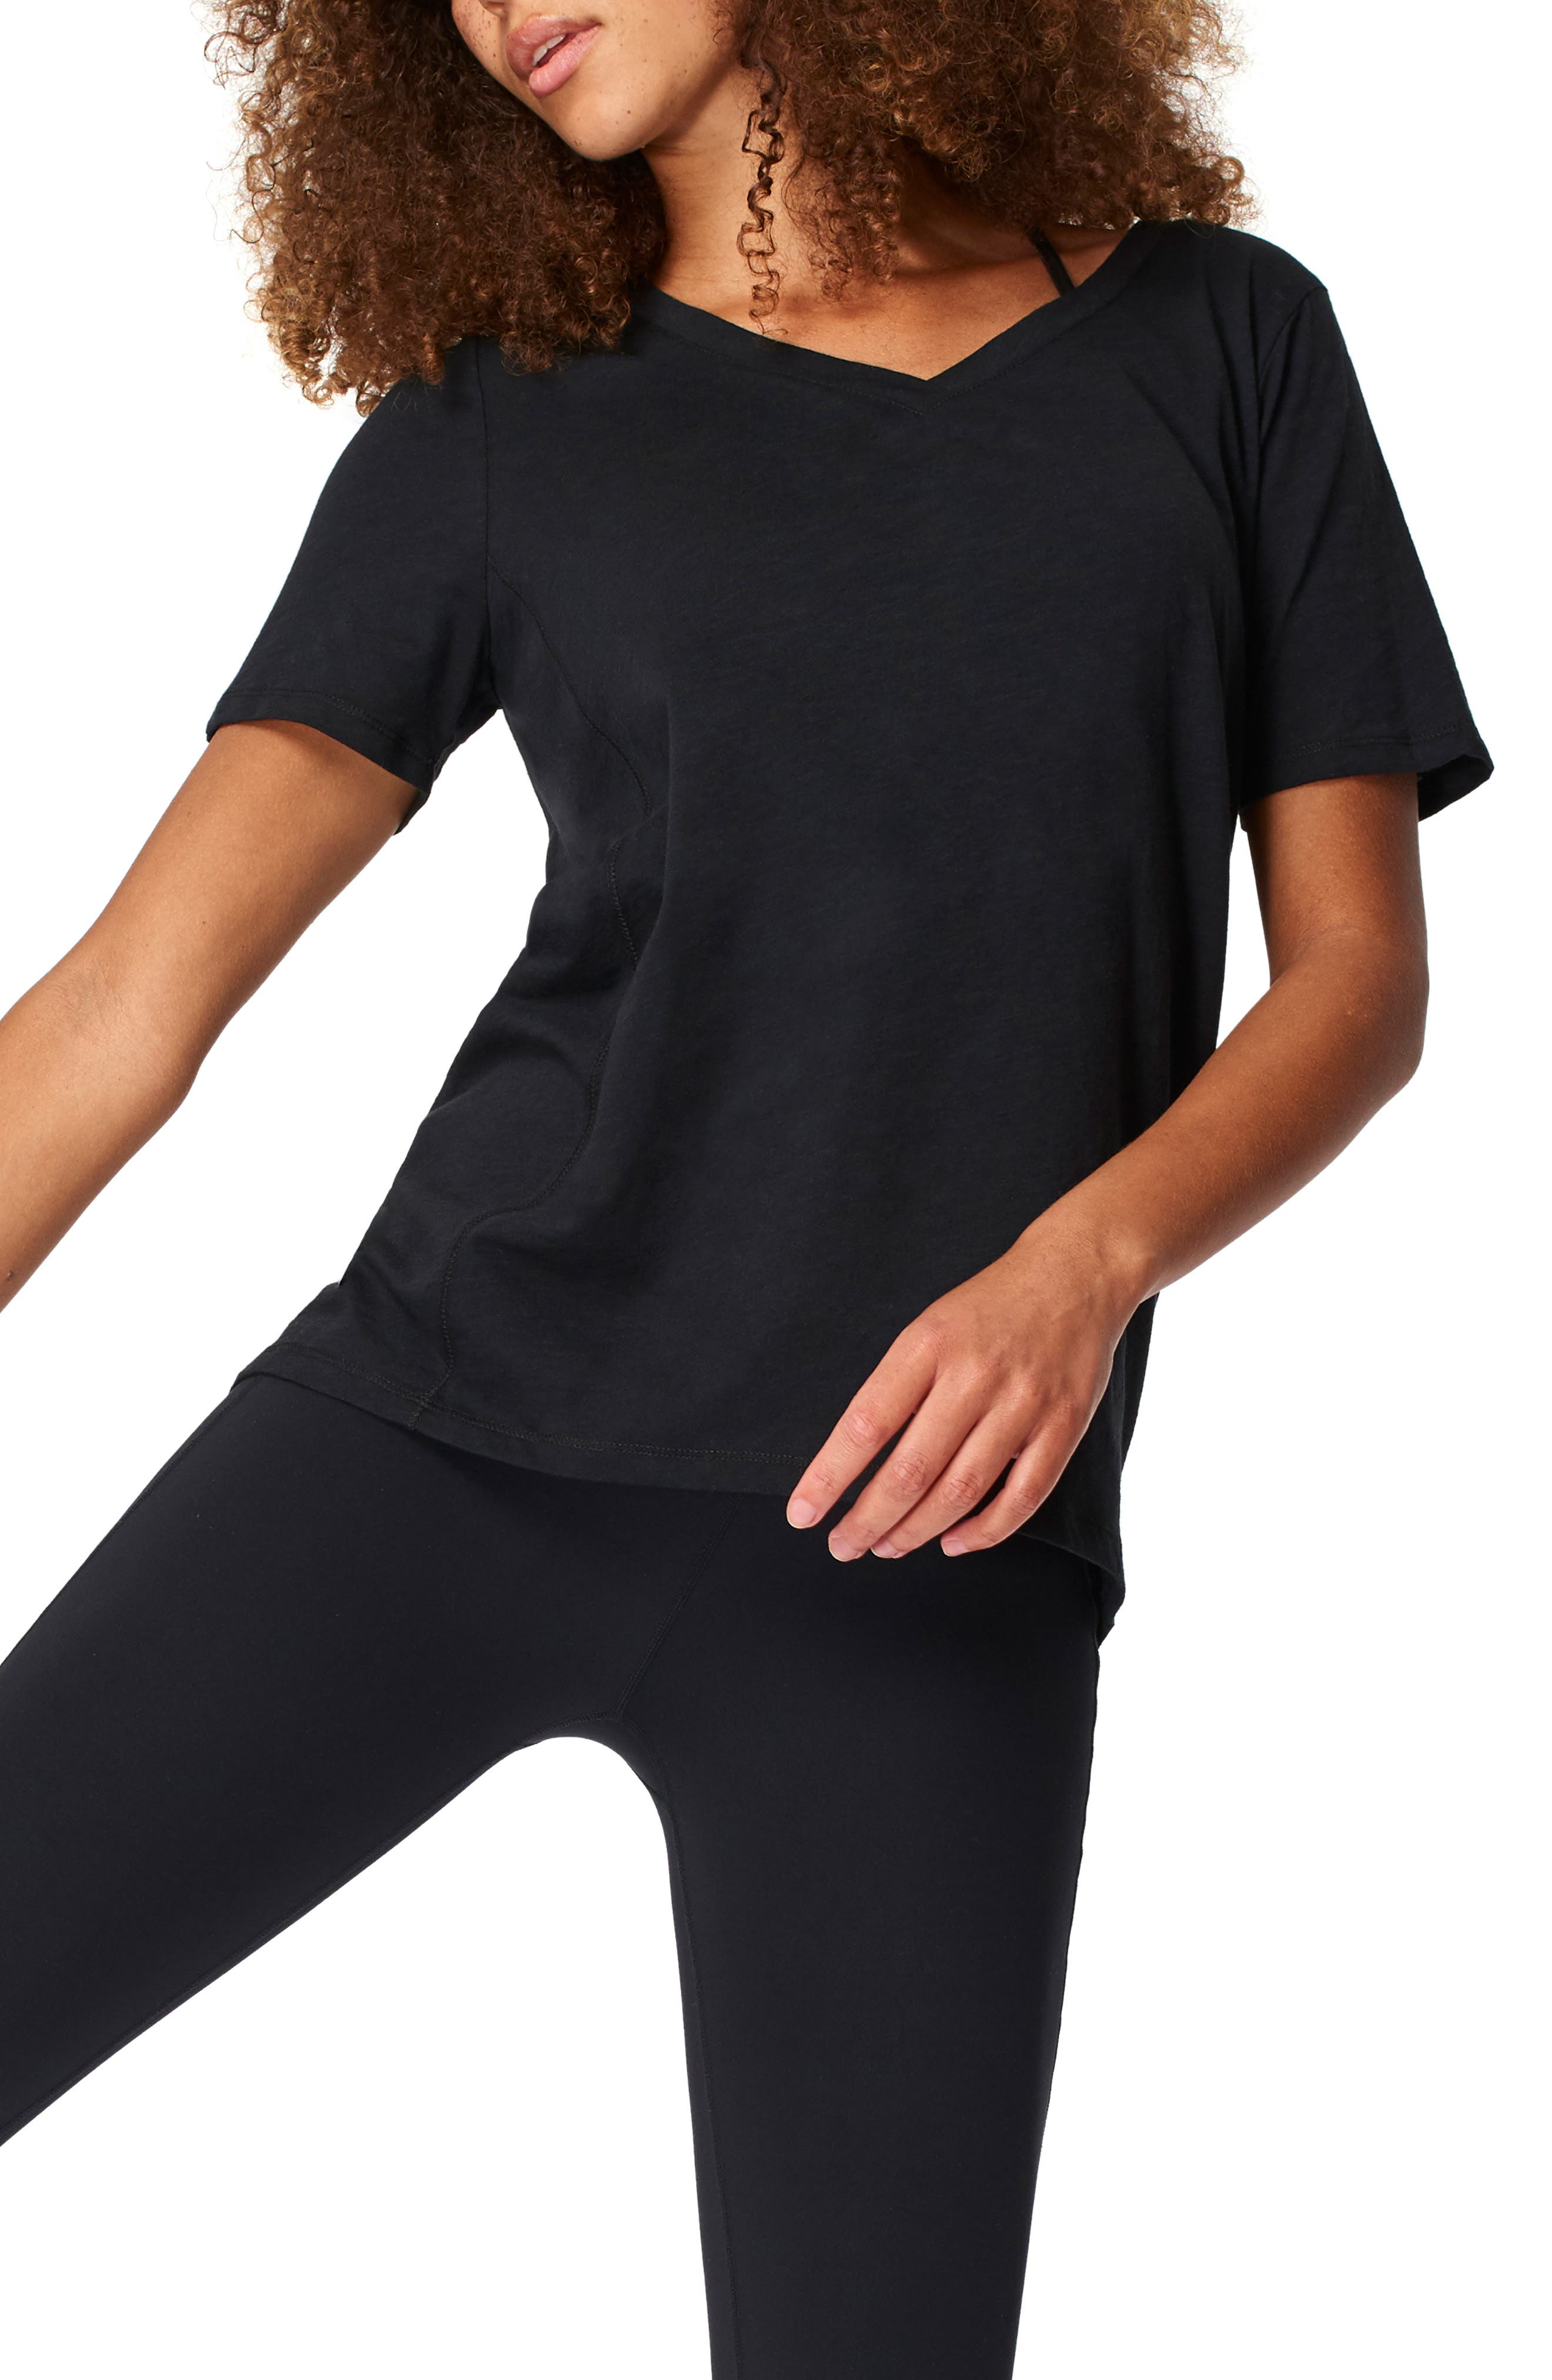 This essential cotton T-shirt is perfect for running errands and staying cool throughout your next cycling class. Style Name: Sweaty Betty Refresh T-Shirt. Style Number: 6084158. Available in stores.